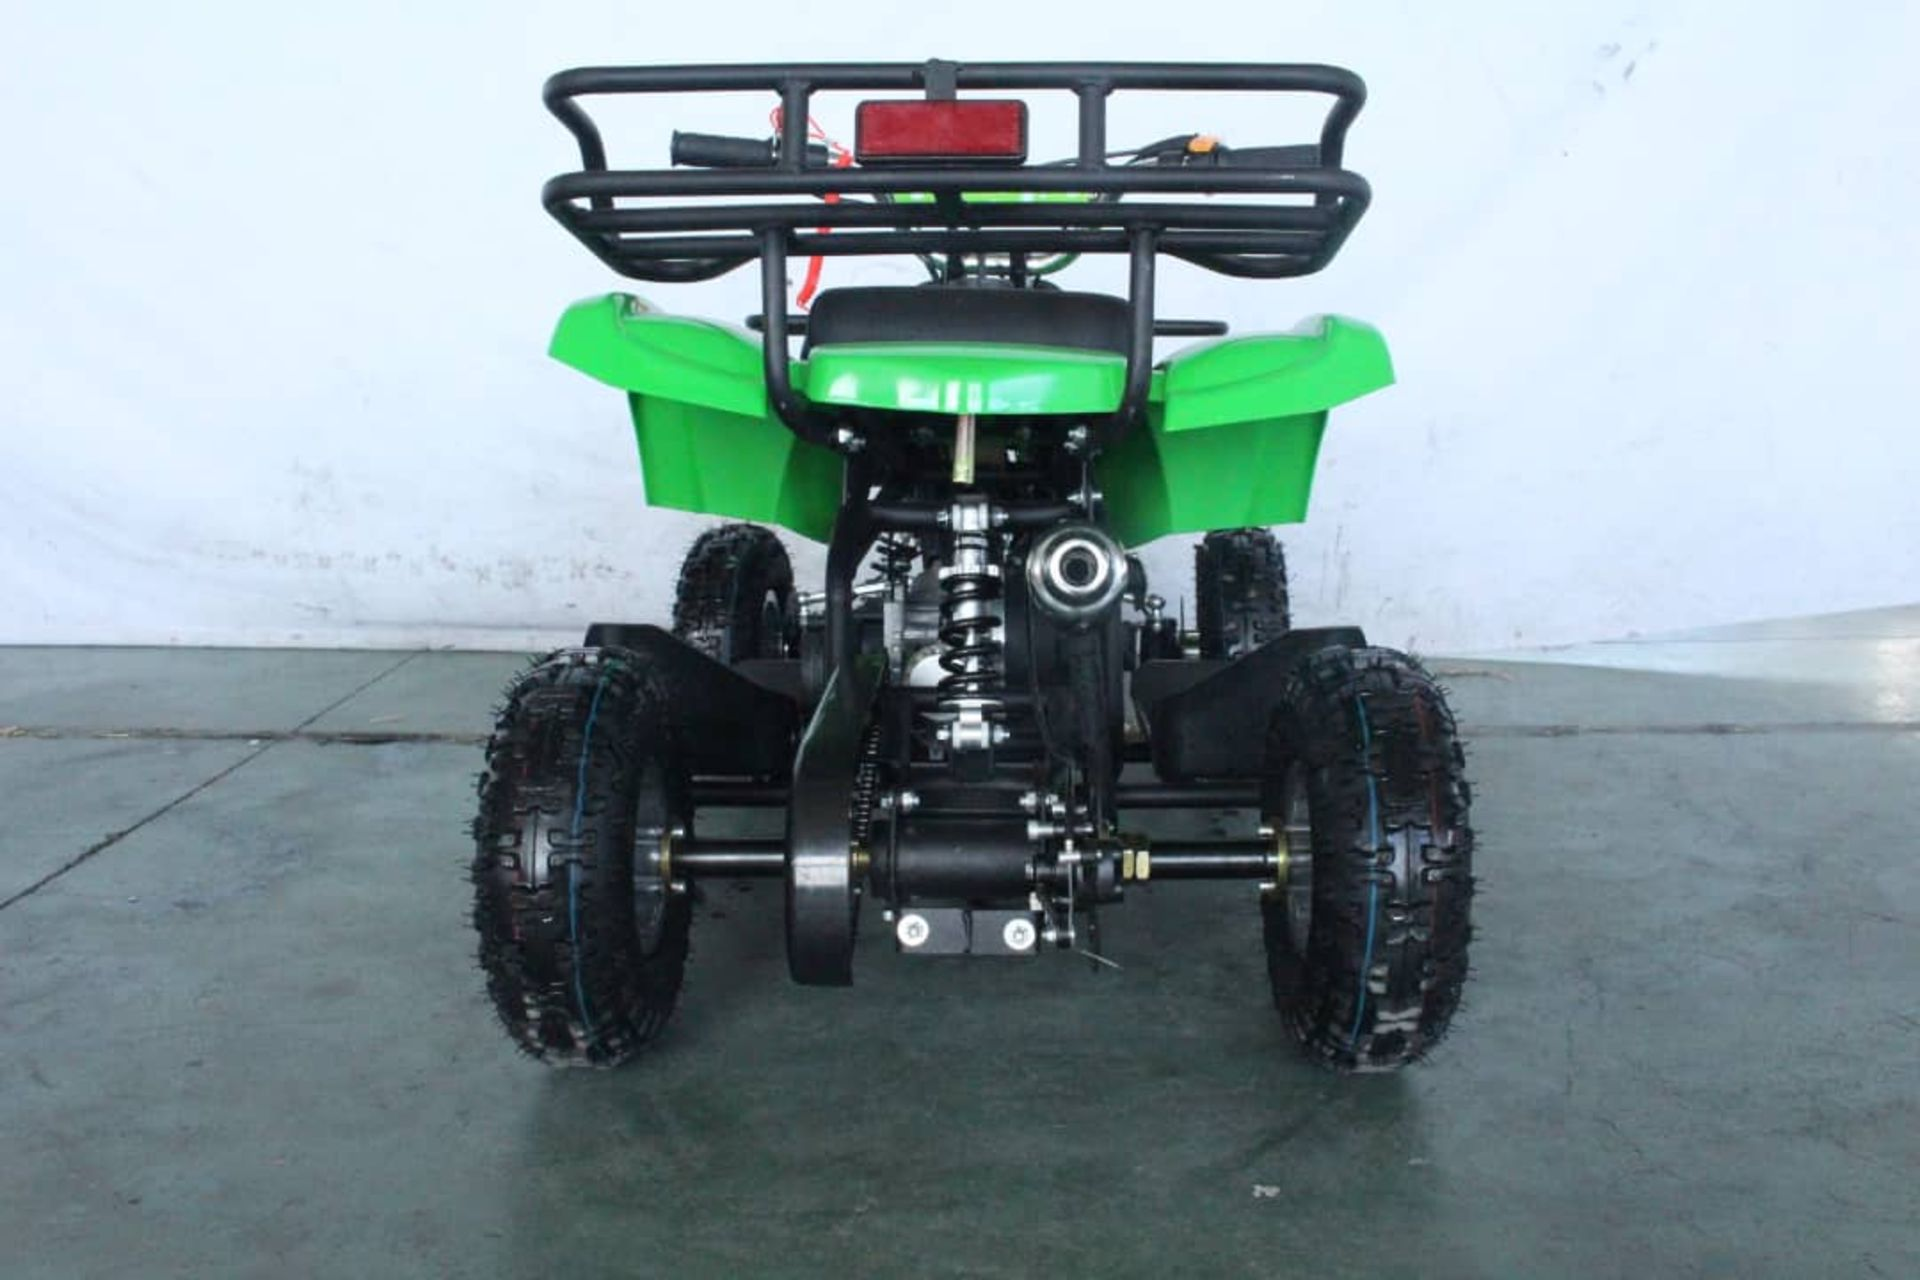 + VAT Brand New 49cc Hawk Mini Quad Bike - Colours May Vary - Full Front And Rear Suspension - Disk - Image 7 of 9